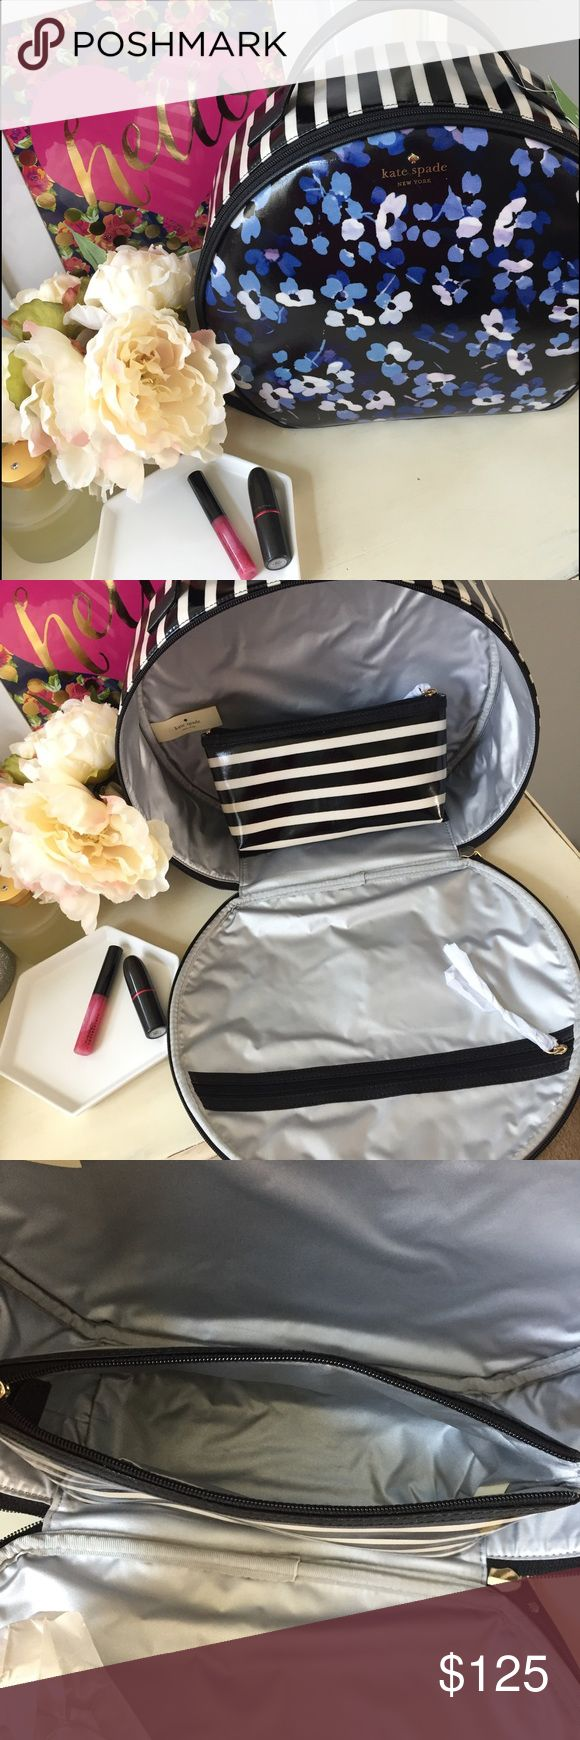 "🆕 Kate Spade Patsie makeup traveling case The perfect makeup travel case from Kate Spade!  Has plenty of room for all your essentials and comes with a mini makeup case inside that has a Velcro bottom. Measurements: 12"" wide x 10.5"" height x4"" depth kate spade Bags Cosmetic Bags & Cases"